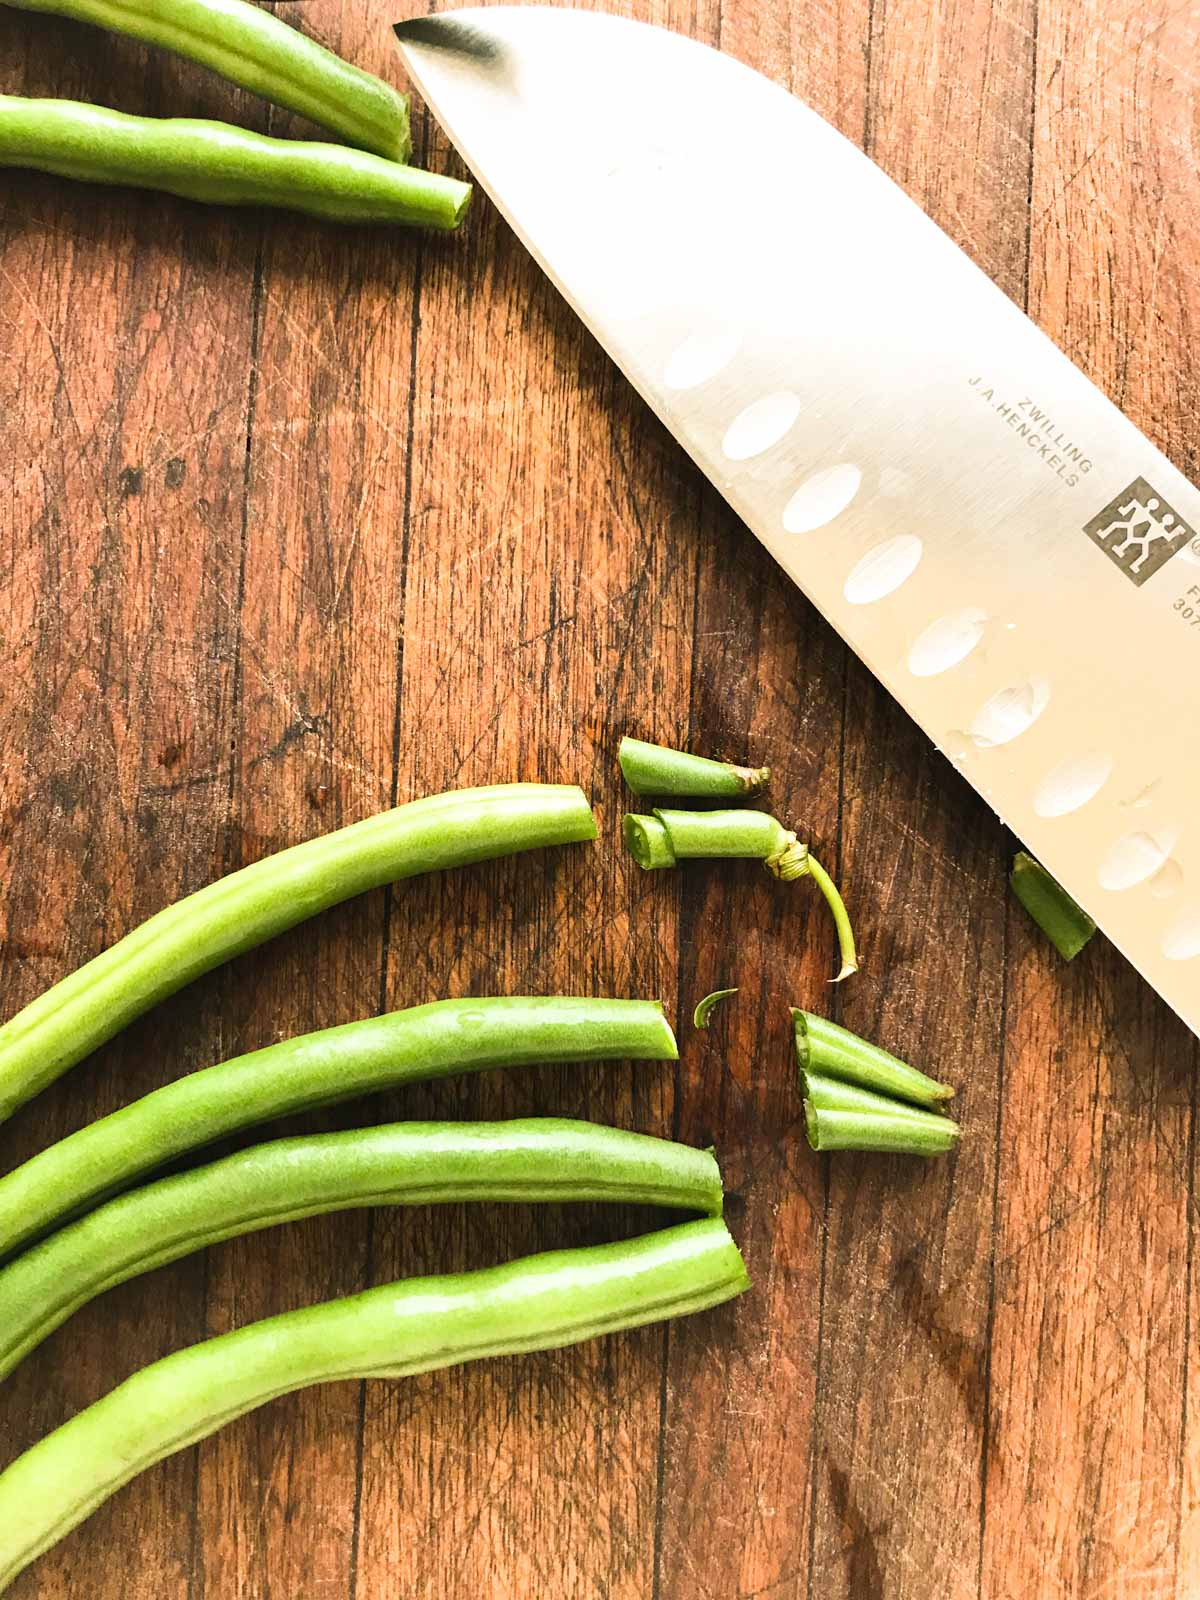 Trimmed green beans with a knife on a cutting board